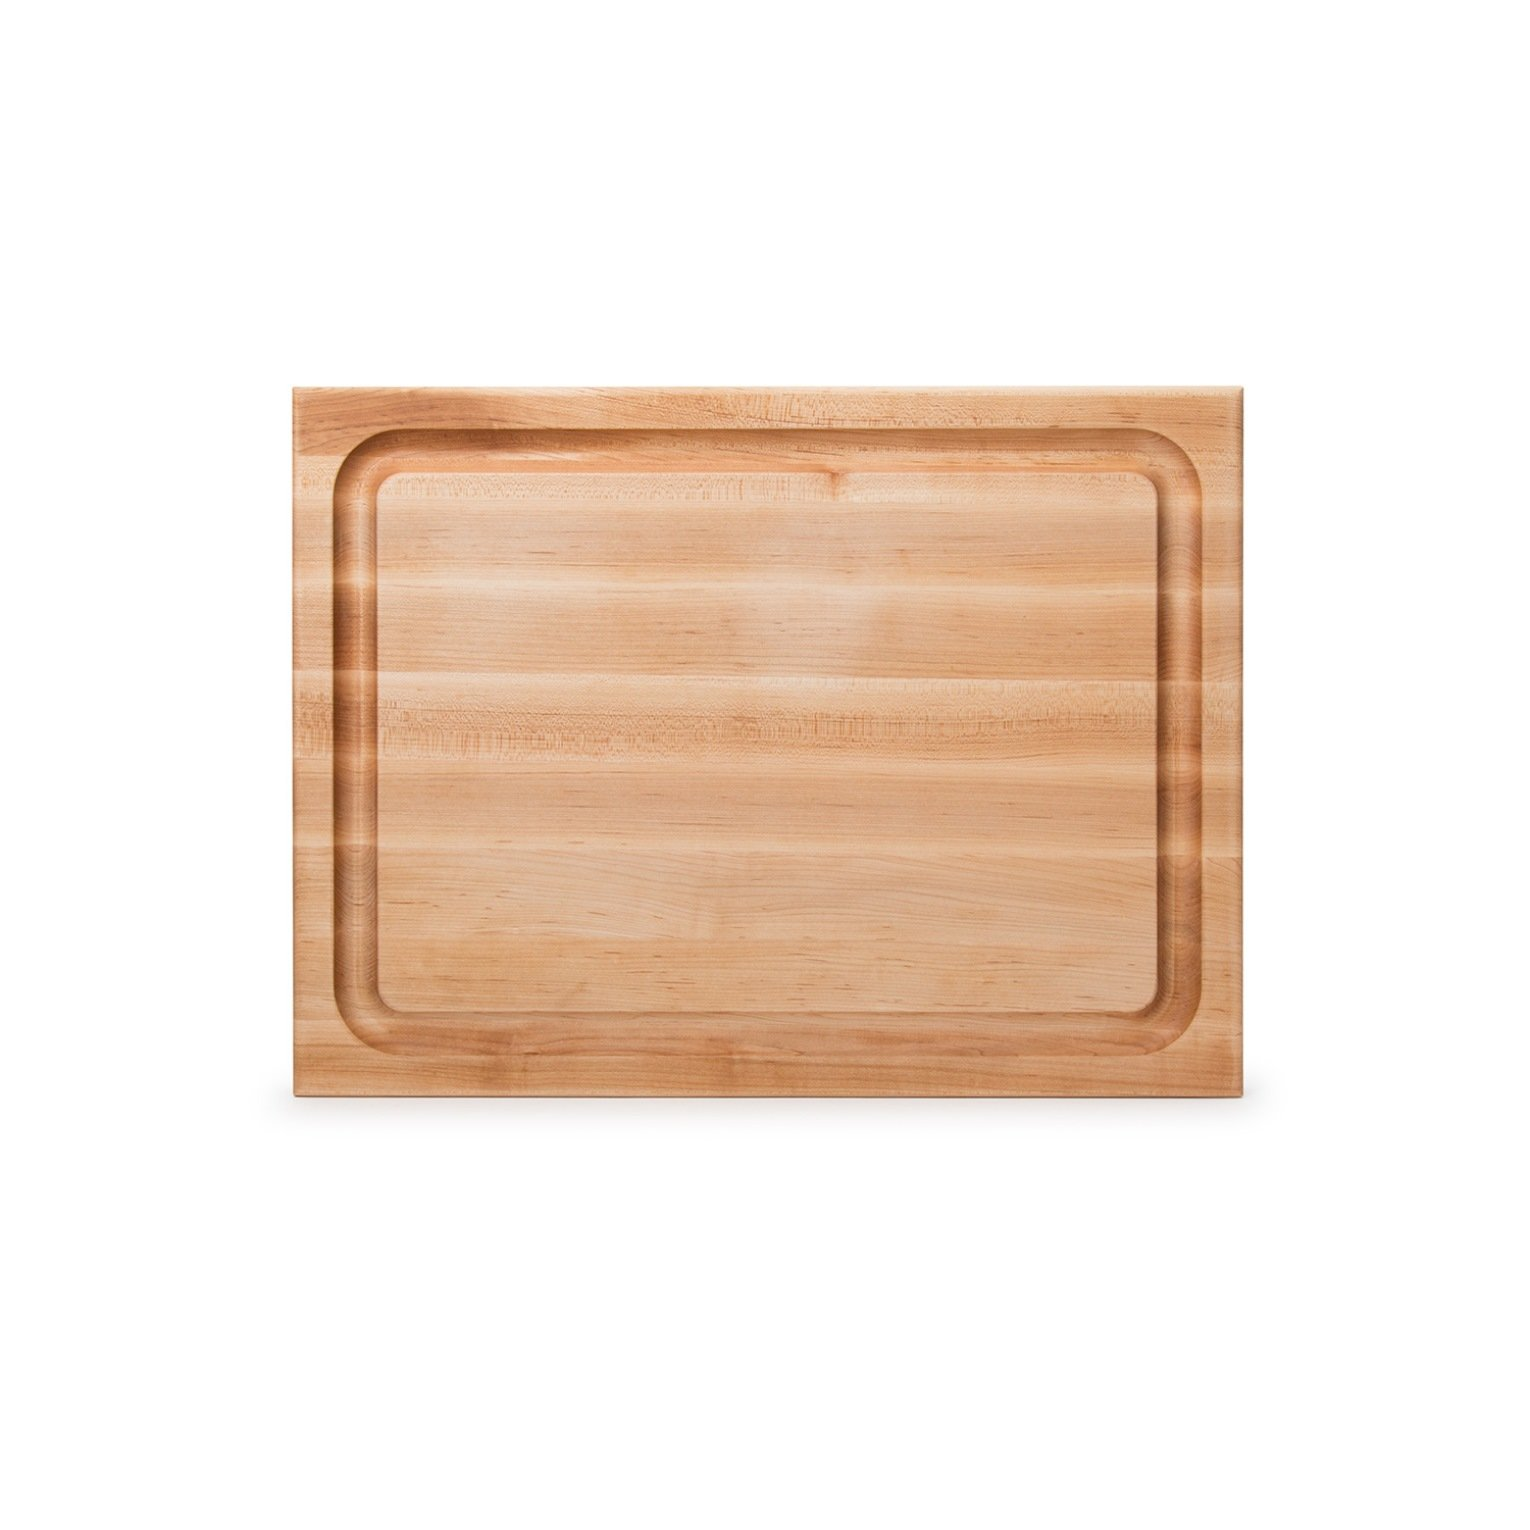 John Boos Maple Wood Edge Grain Reversible Cutting Board with Juice Groove, 20 Inches x 15 Inches x 1.5 Inches by John Boos (Image #6)